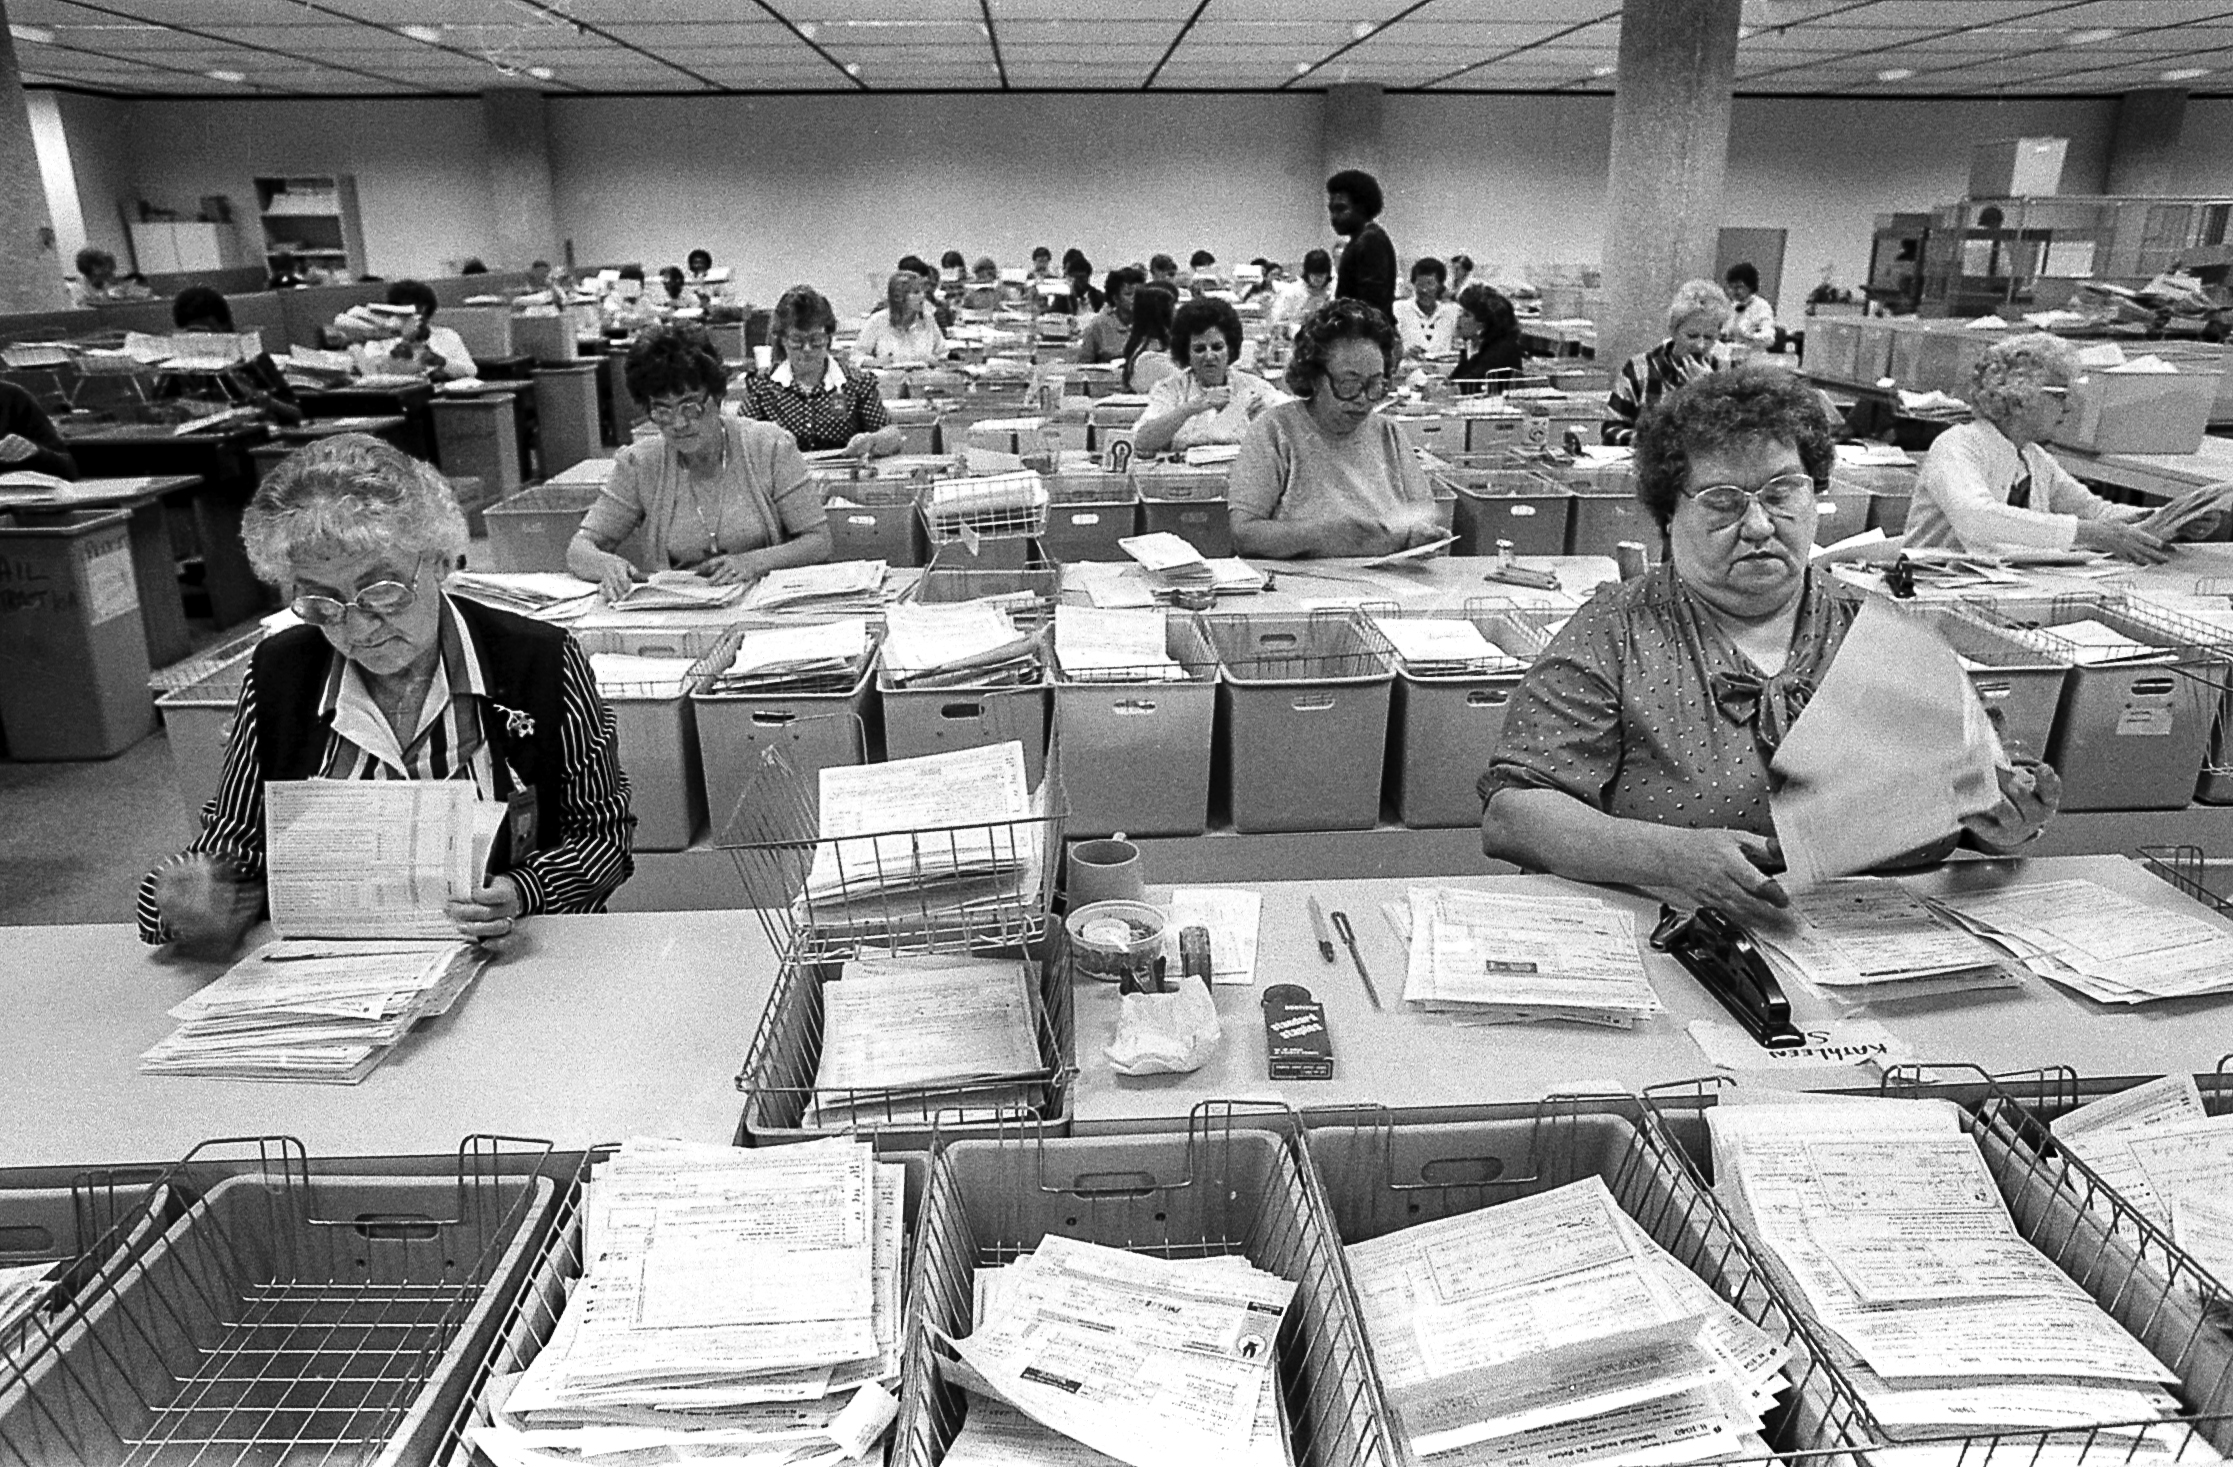 State employees processing tax returns at the Illinois Department of Revenue in April, 1986. File/David Klobucar/The State Journal-Register 